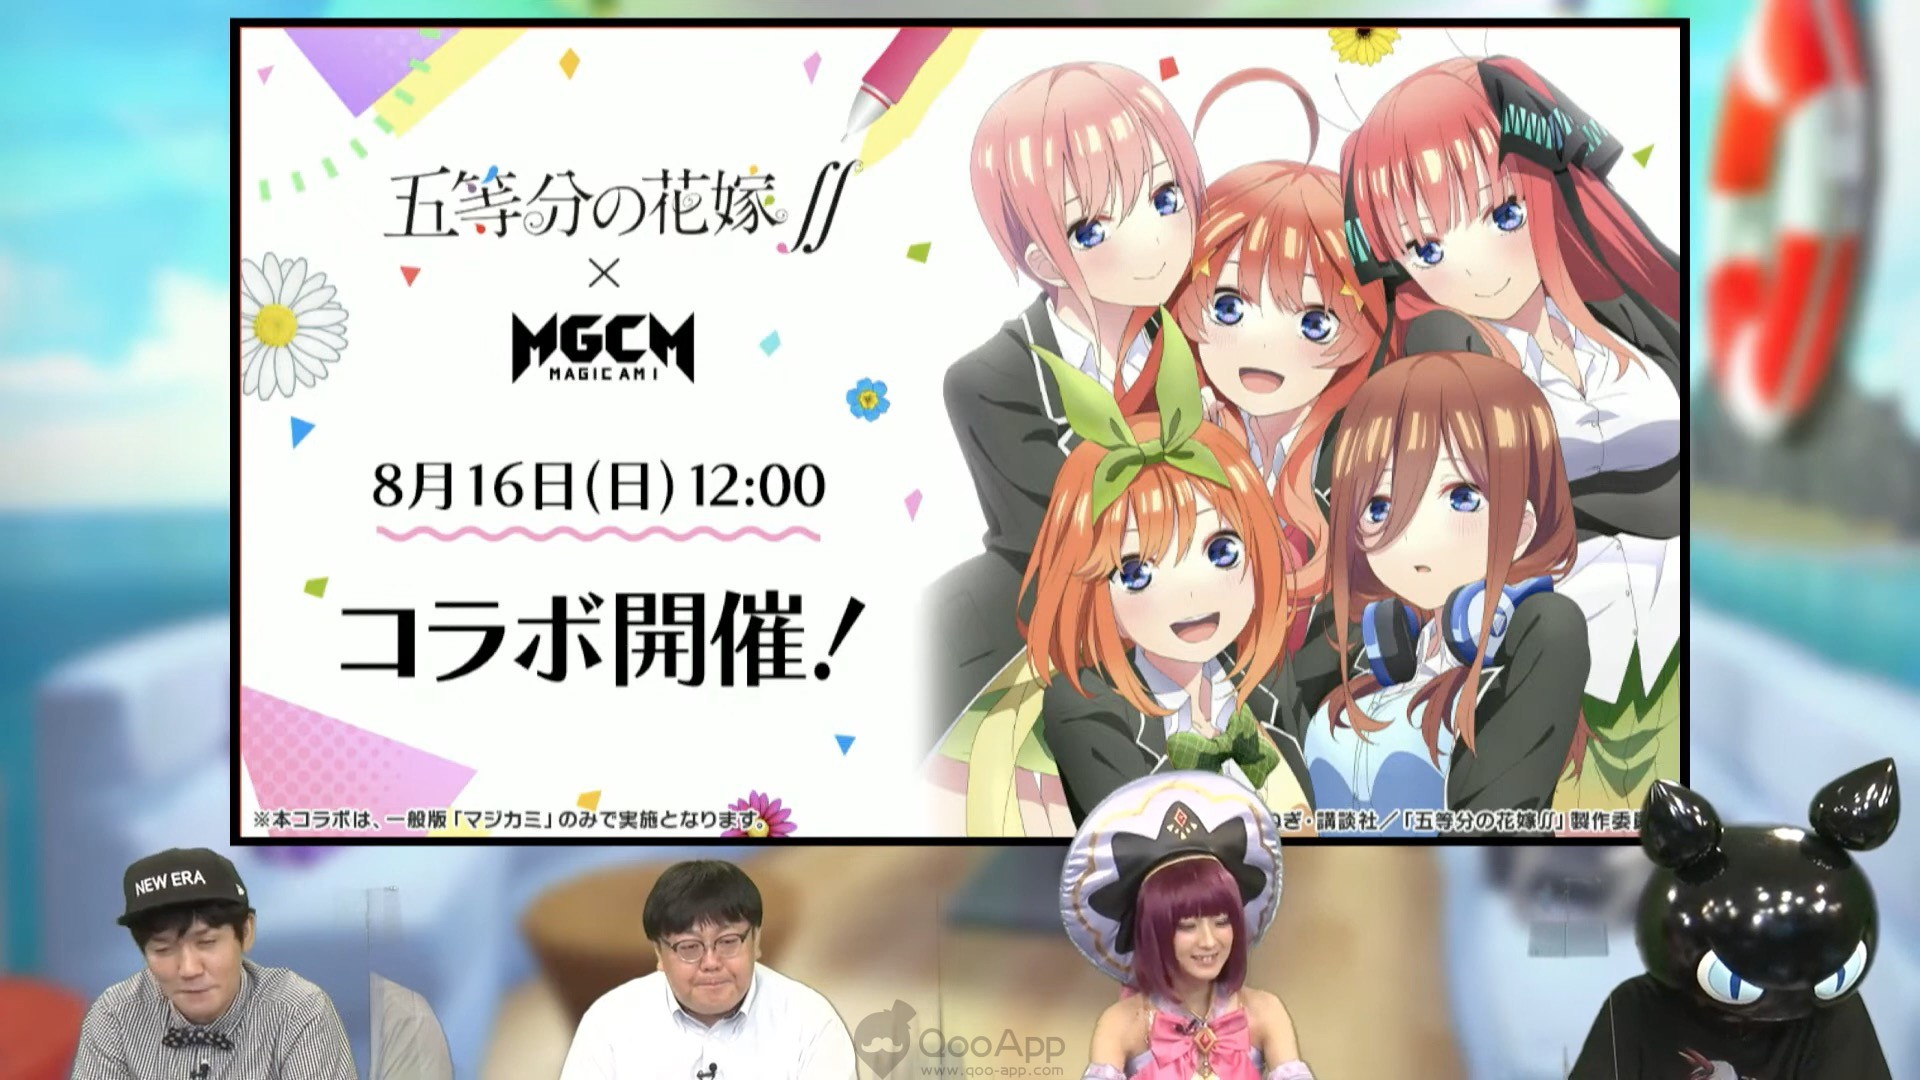 """MAGICAMI"" Gets English Release in Late August! Collaboration with ""The Quintessential Quintuplets∬"" Starts on August 16!"